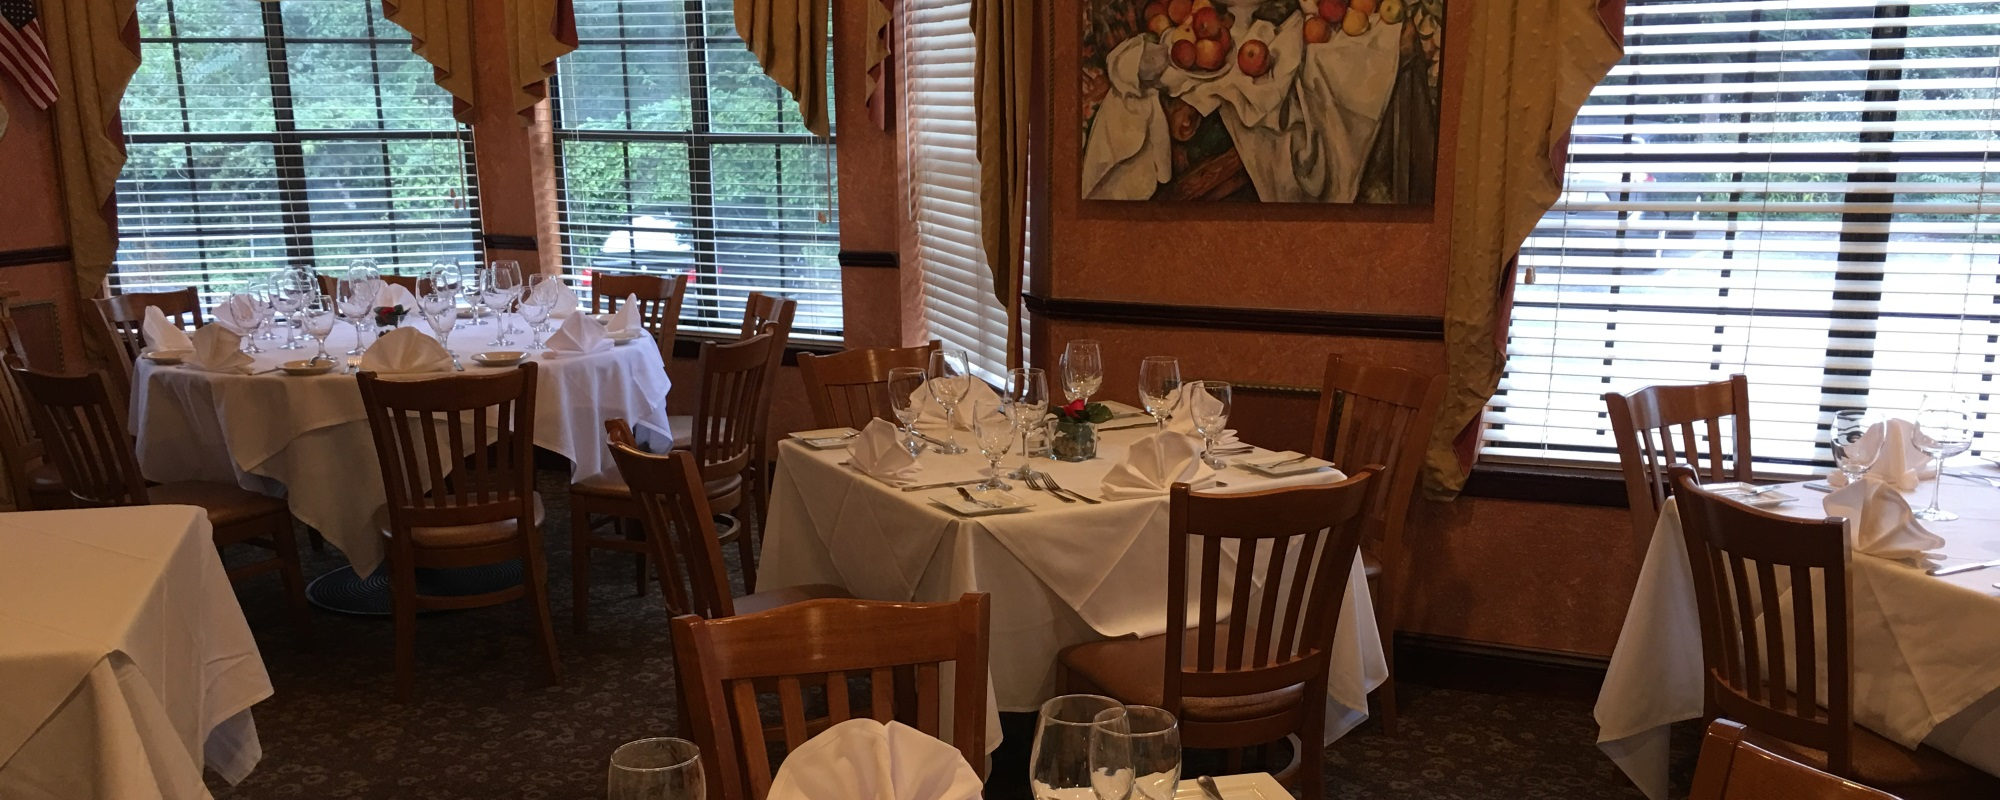 Amore of Wayne | Fine Italian Cuisine & Steak Close by in Wayne, NJ